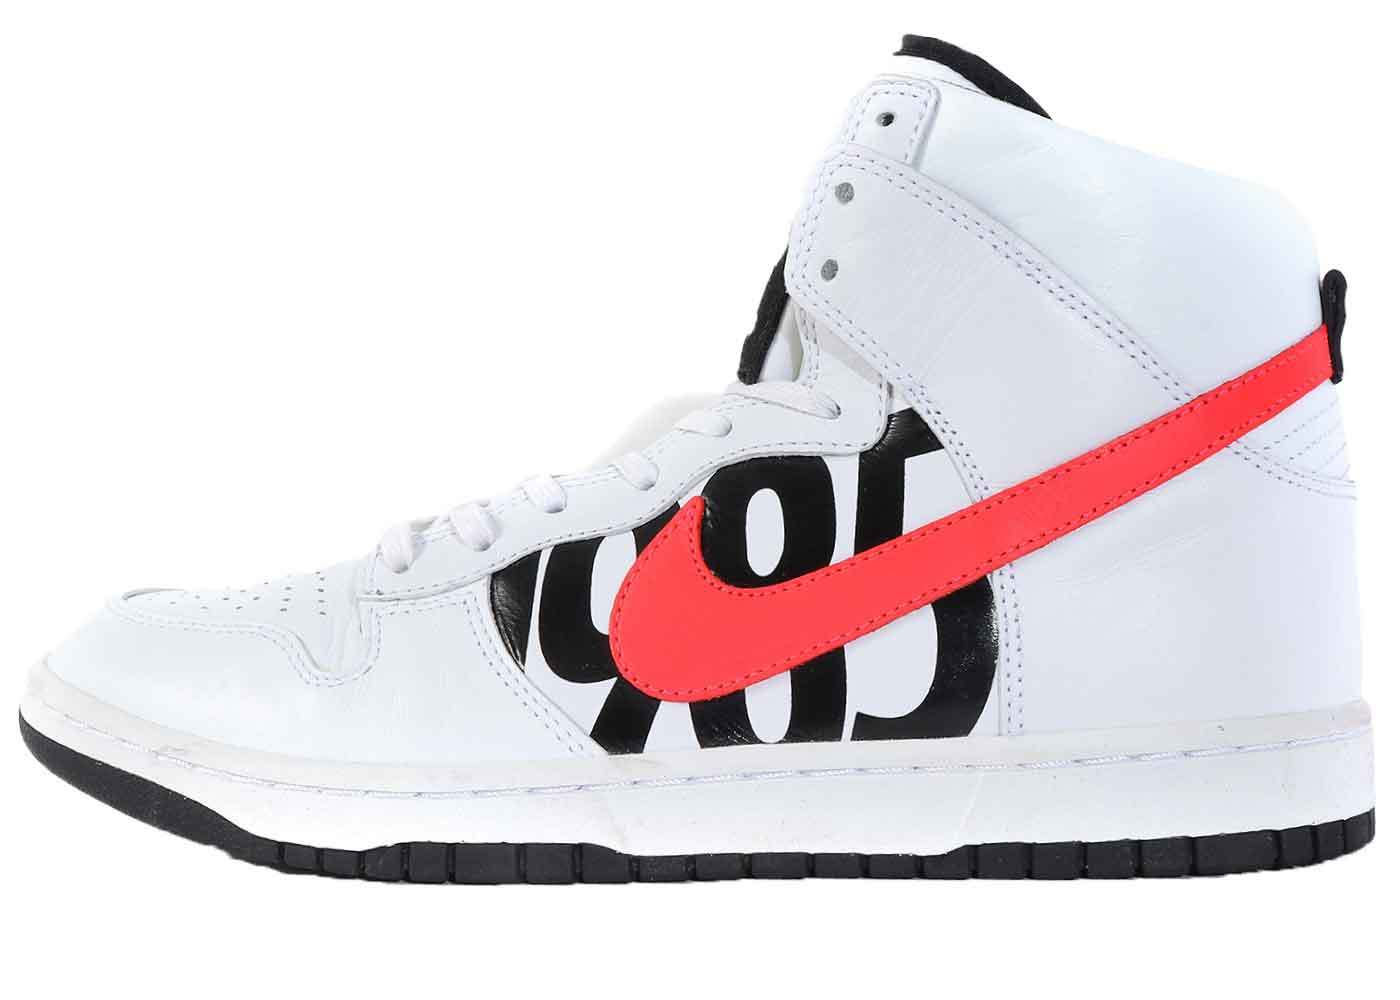 Nike Dunk Lux High Undefeated White Infrared の写真